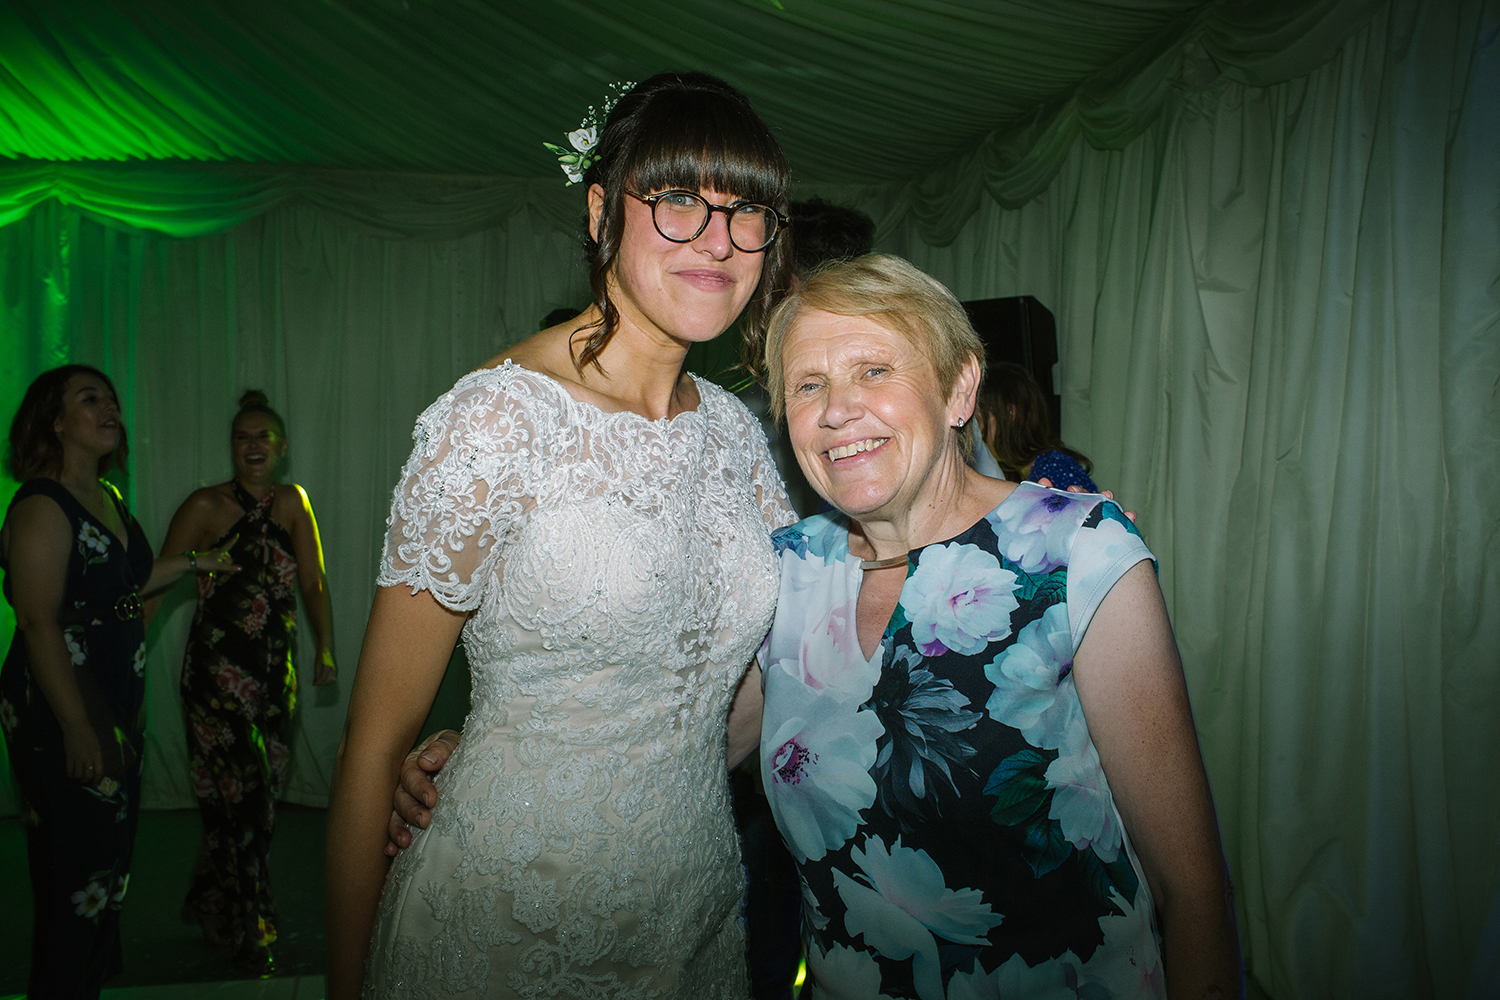 Bride and her mother on the dance floor